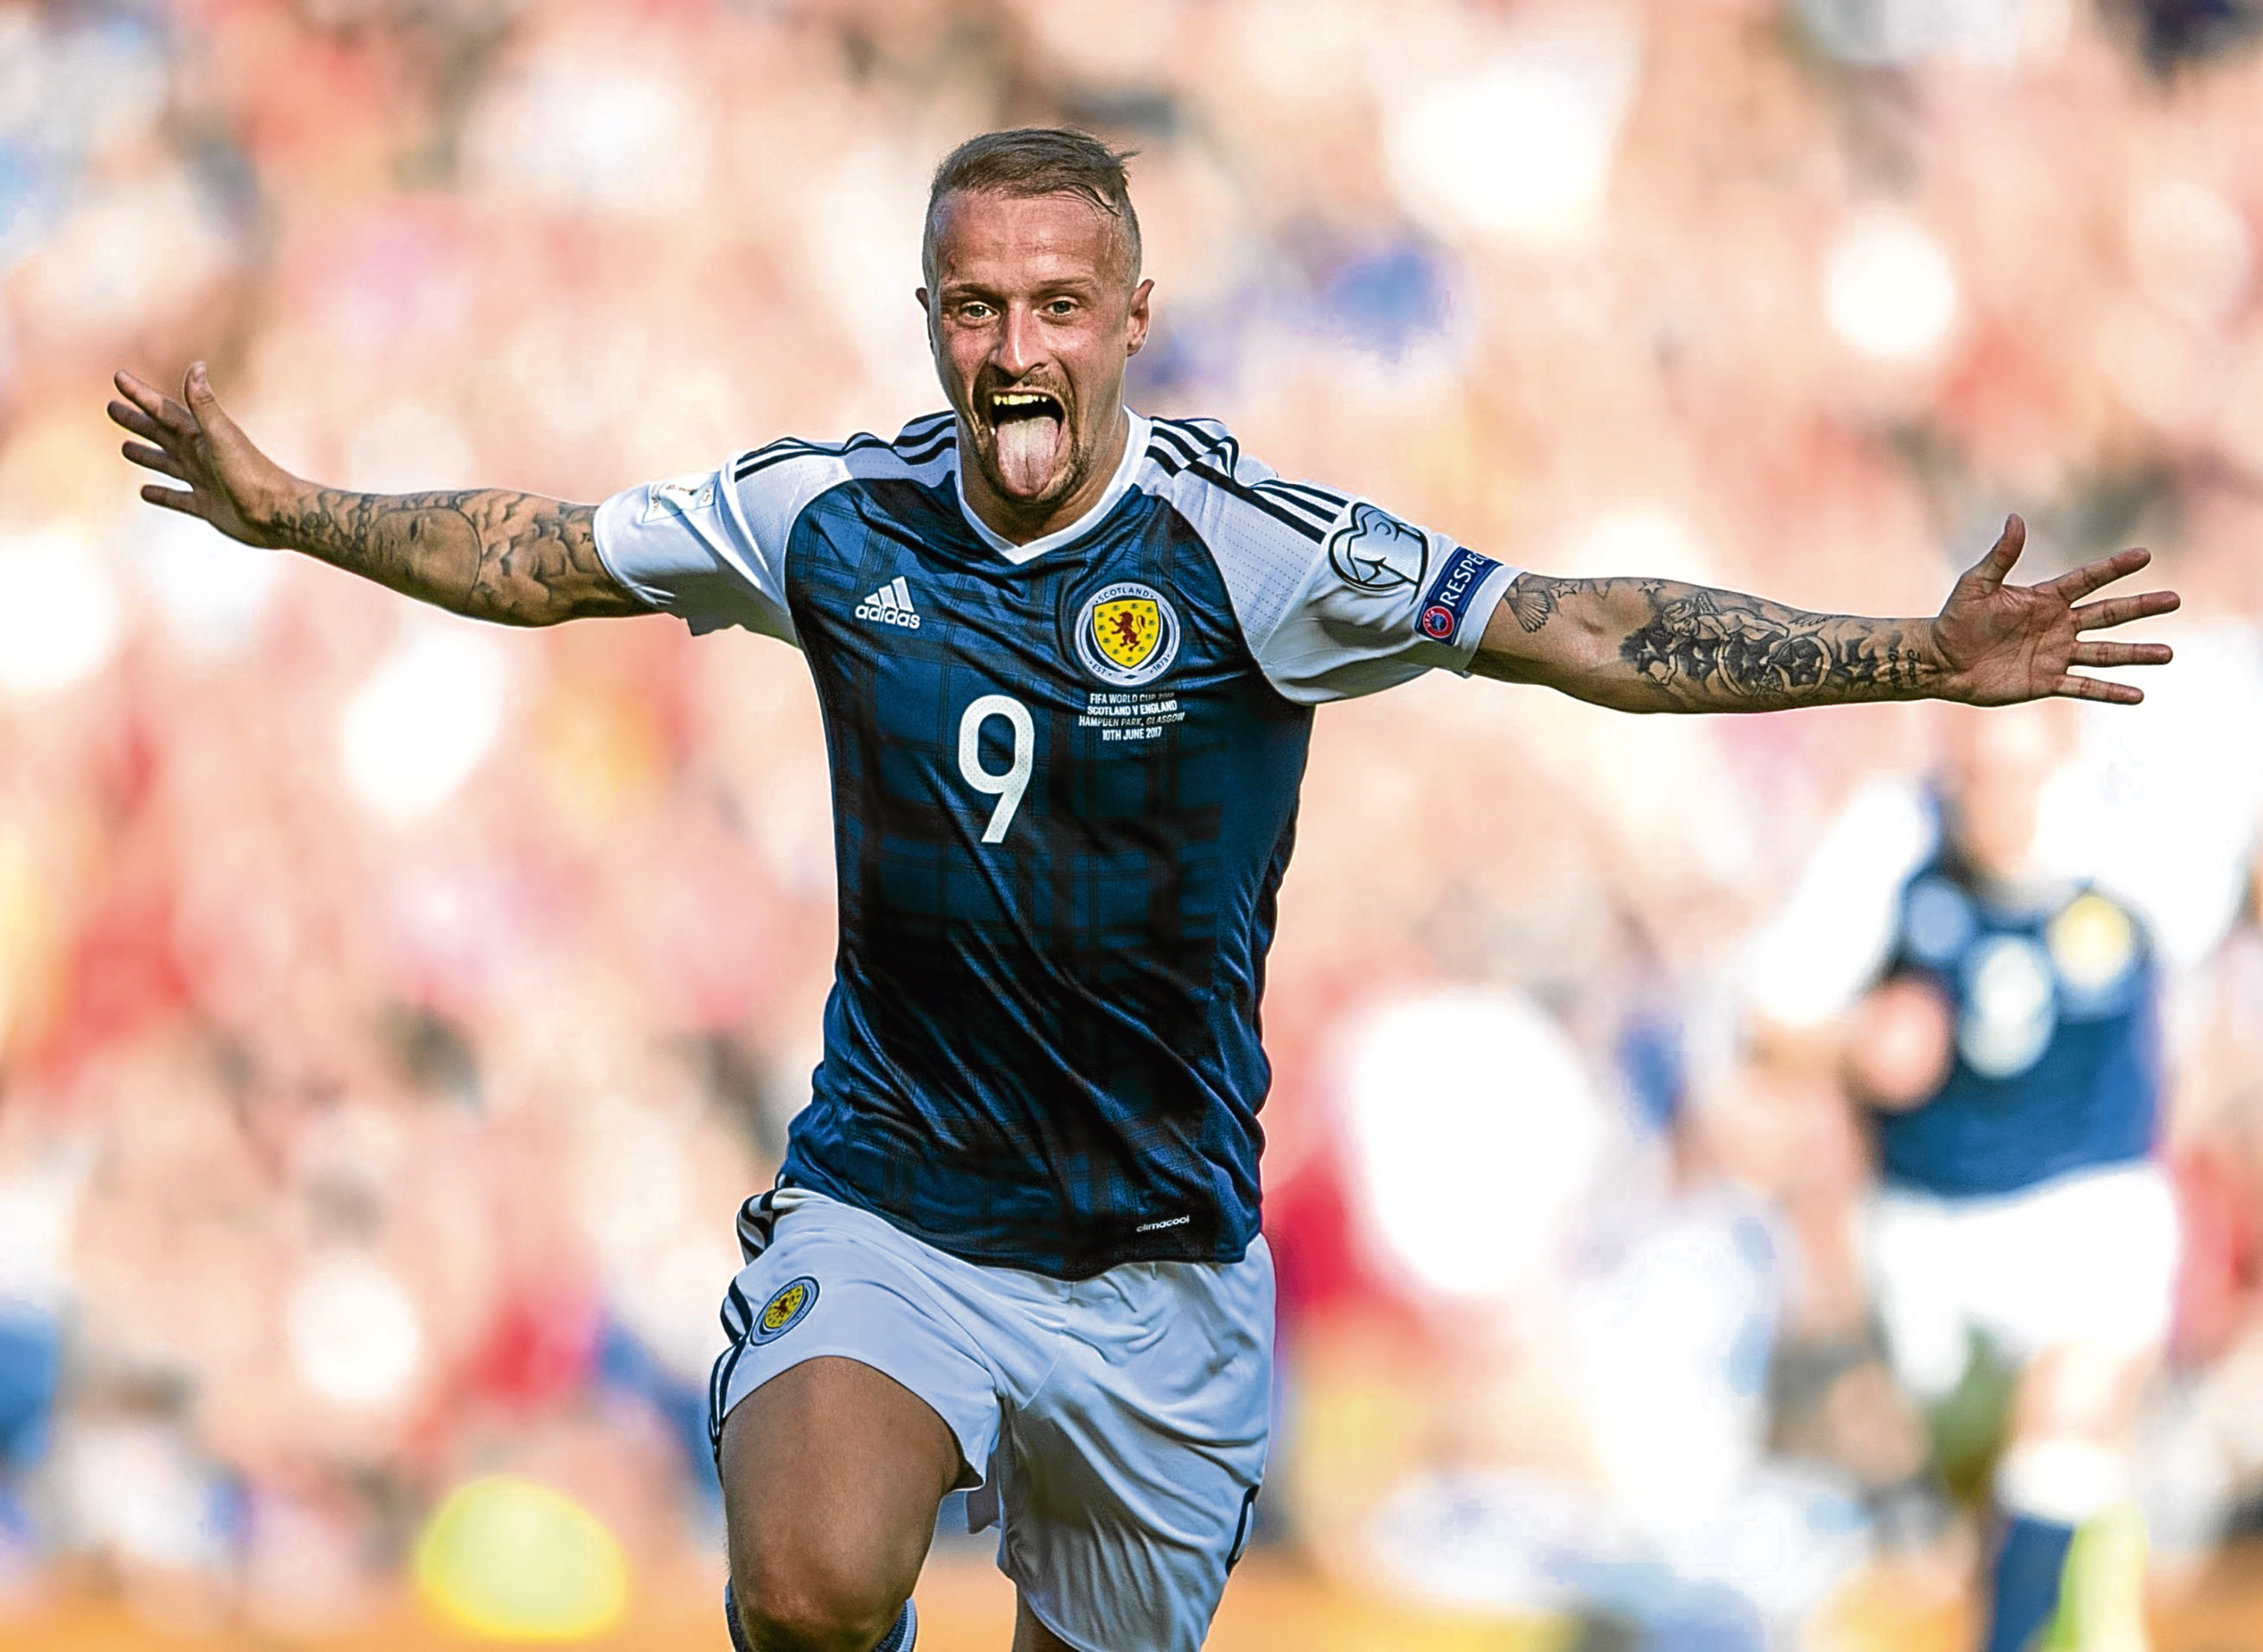 Leigh Griffiths can be the missing piece of the puzzle for Scotland, Knox says.